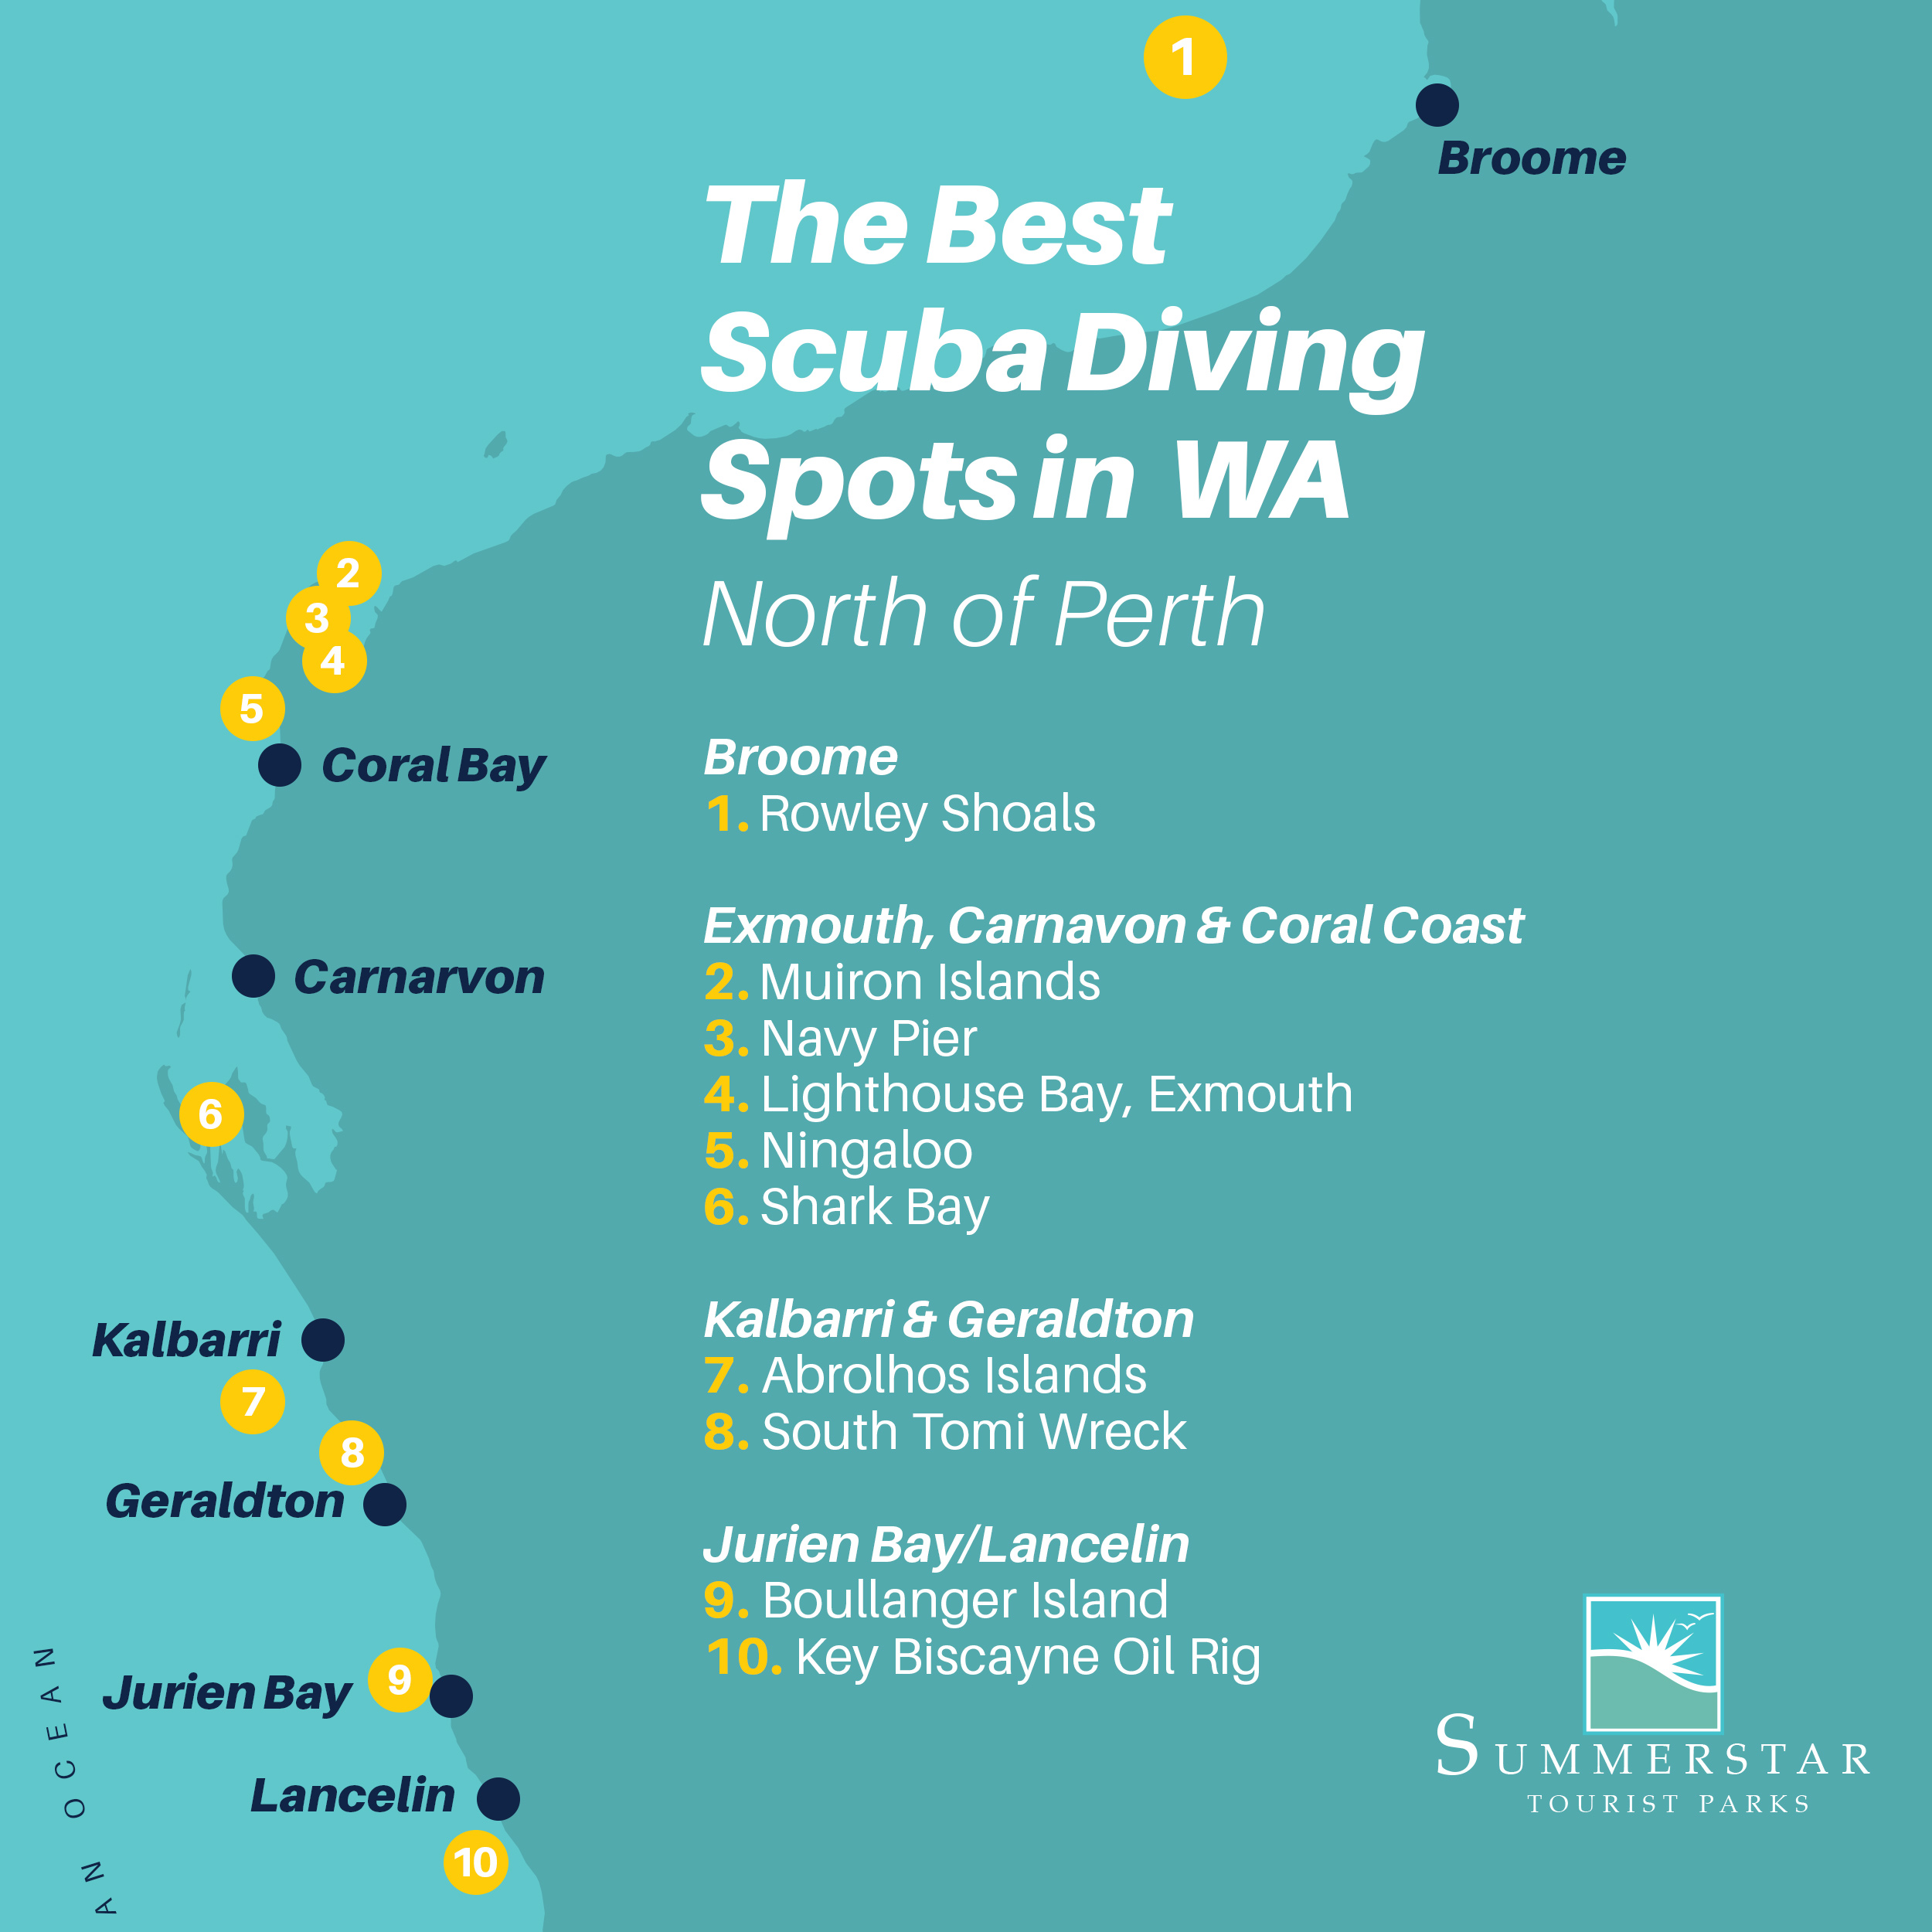 The best scuba diving spots in wa north of Perth.